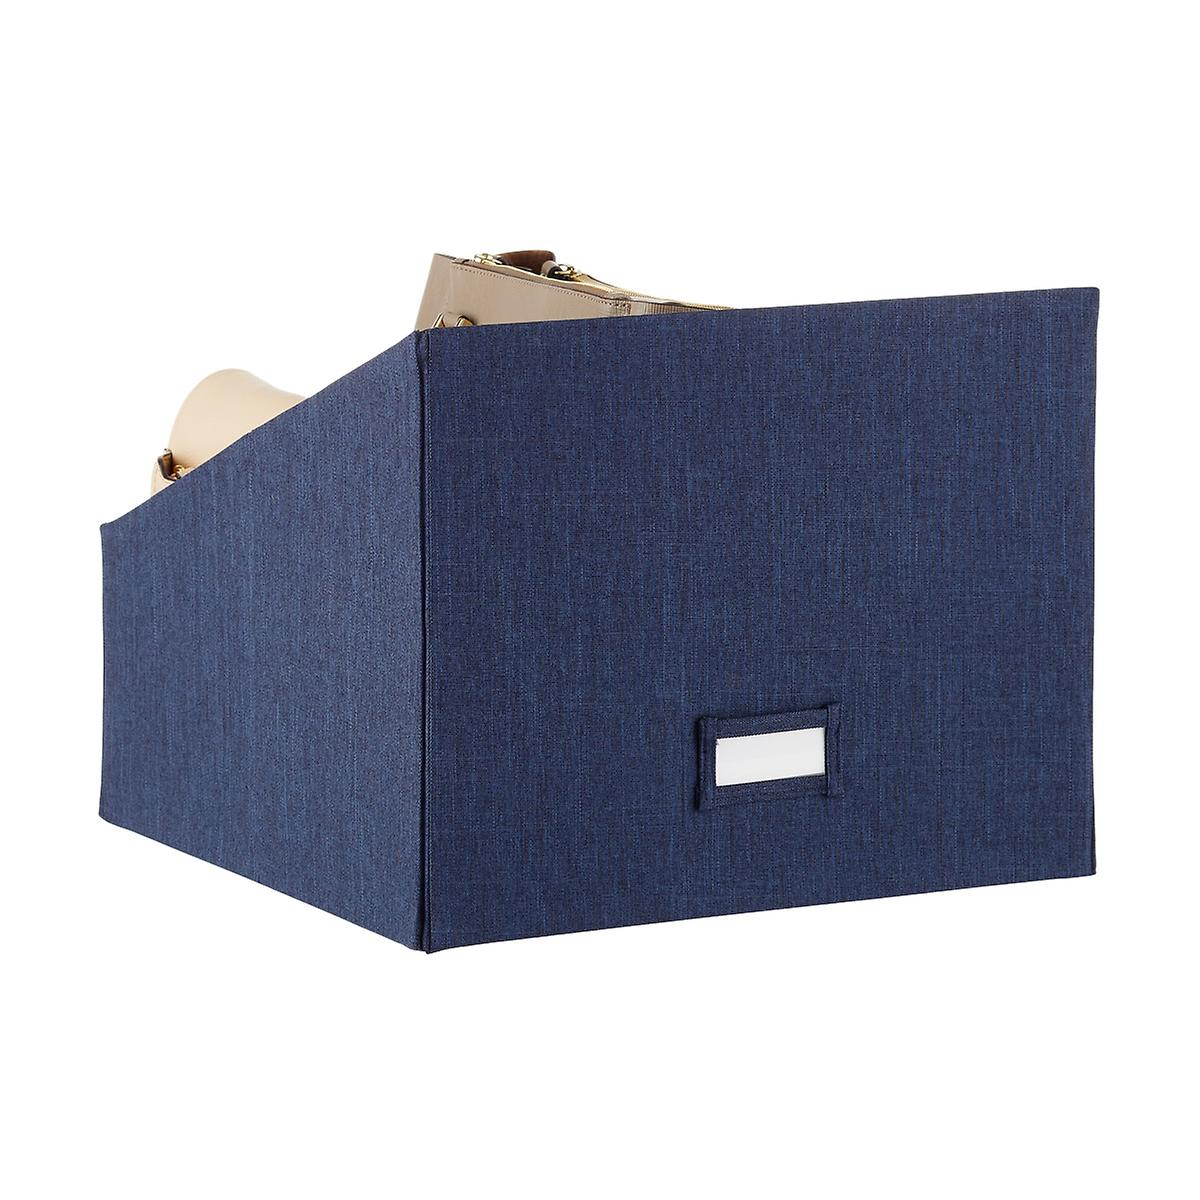 Navy Purse Storage Bin